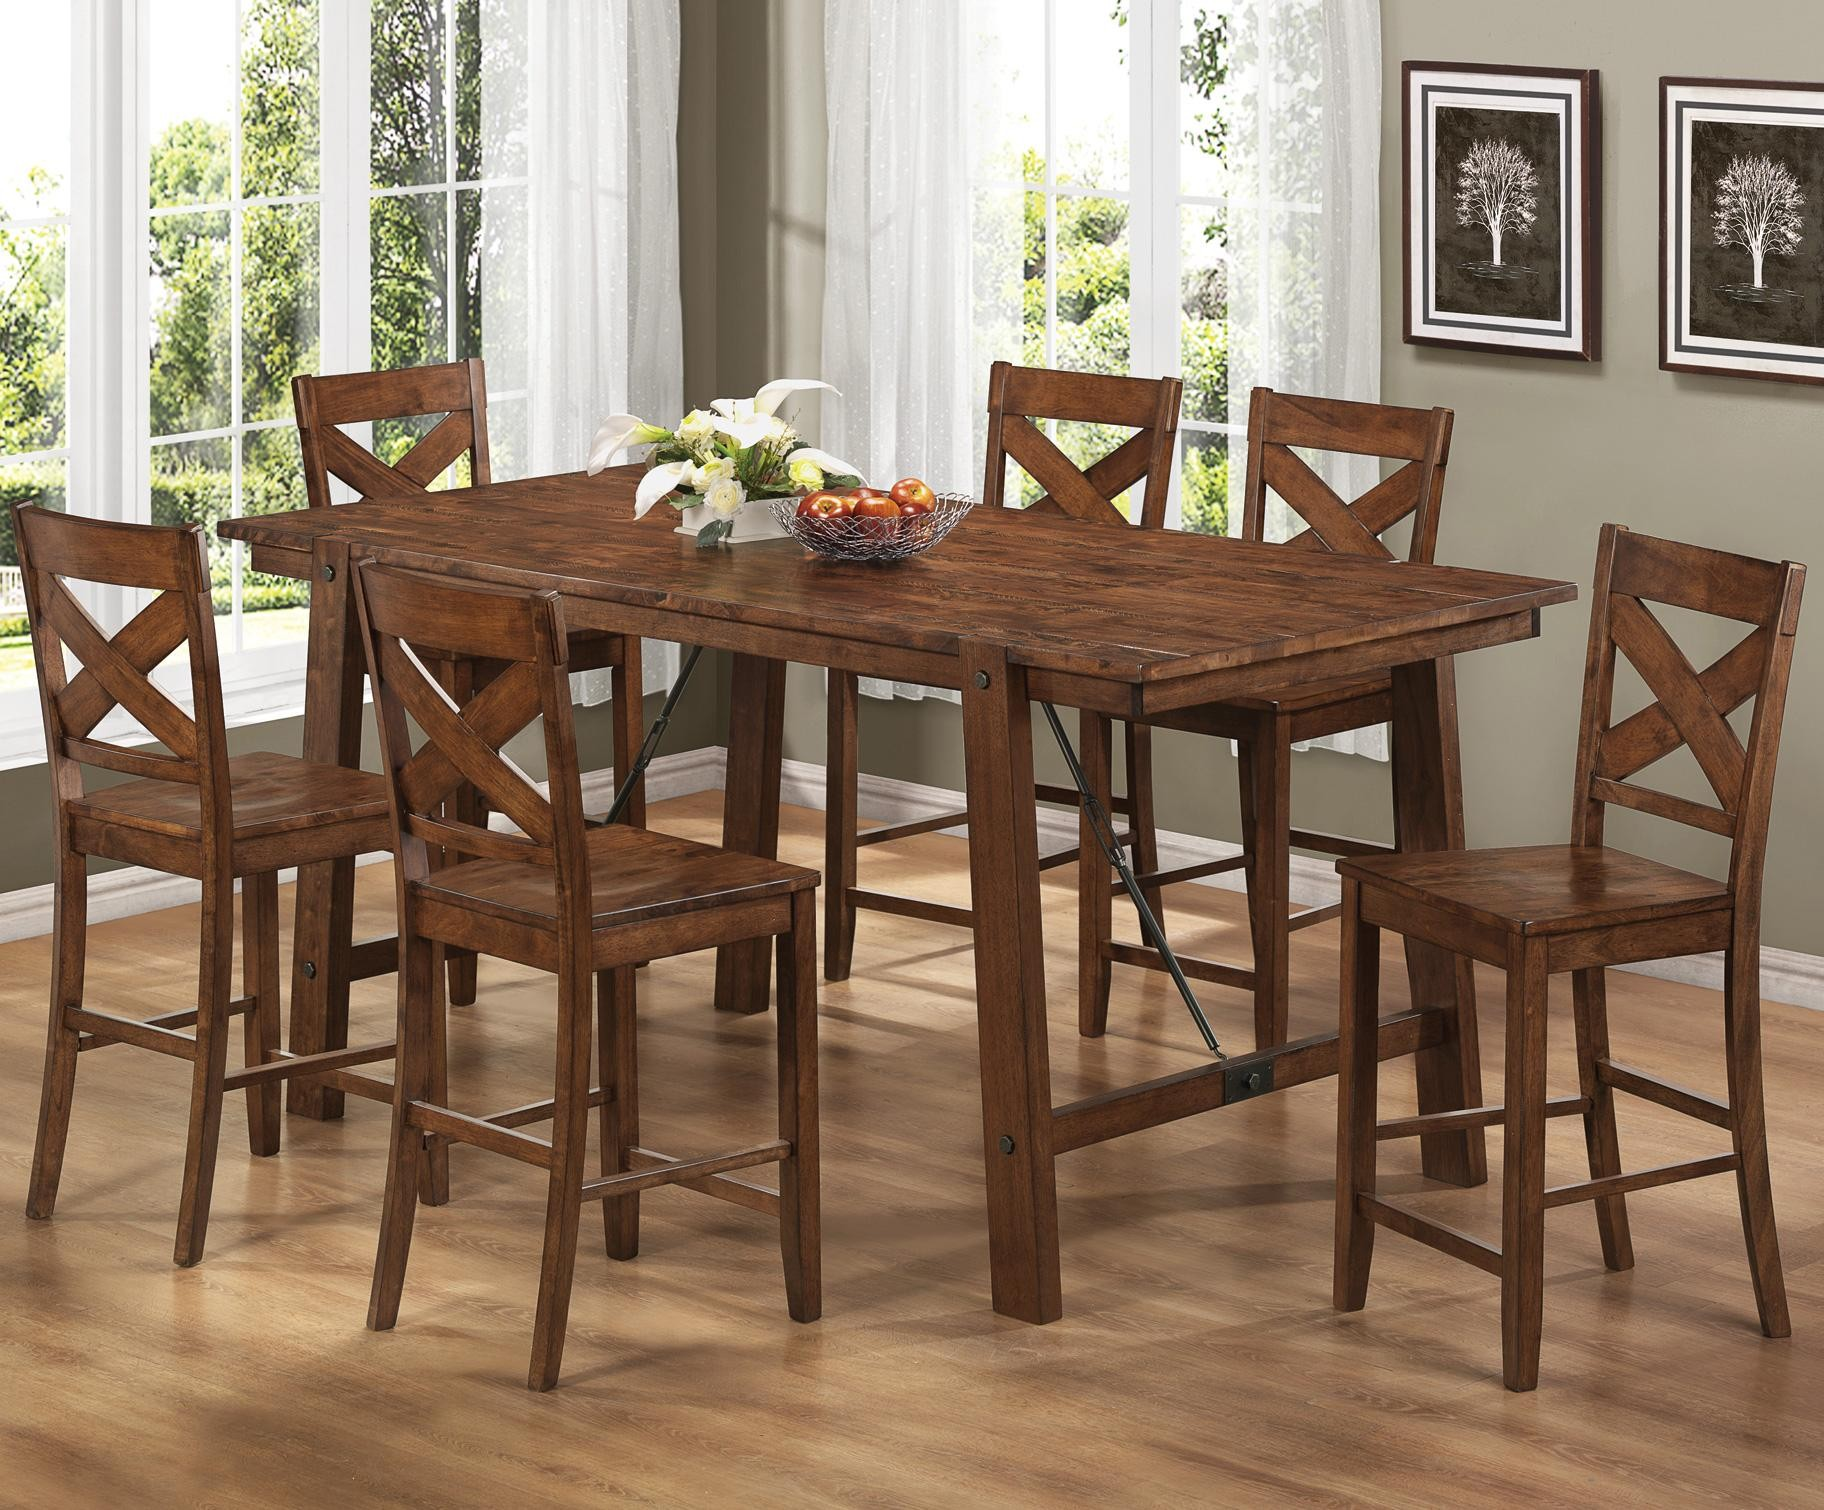 Kitchen Table Top : High top kitchen table sets homesfeed